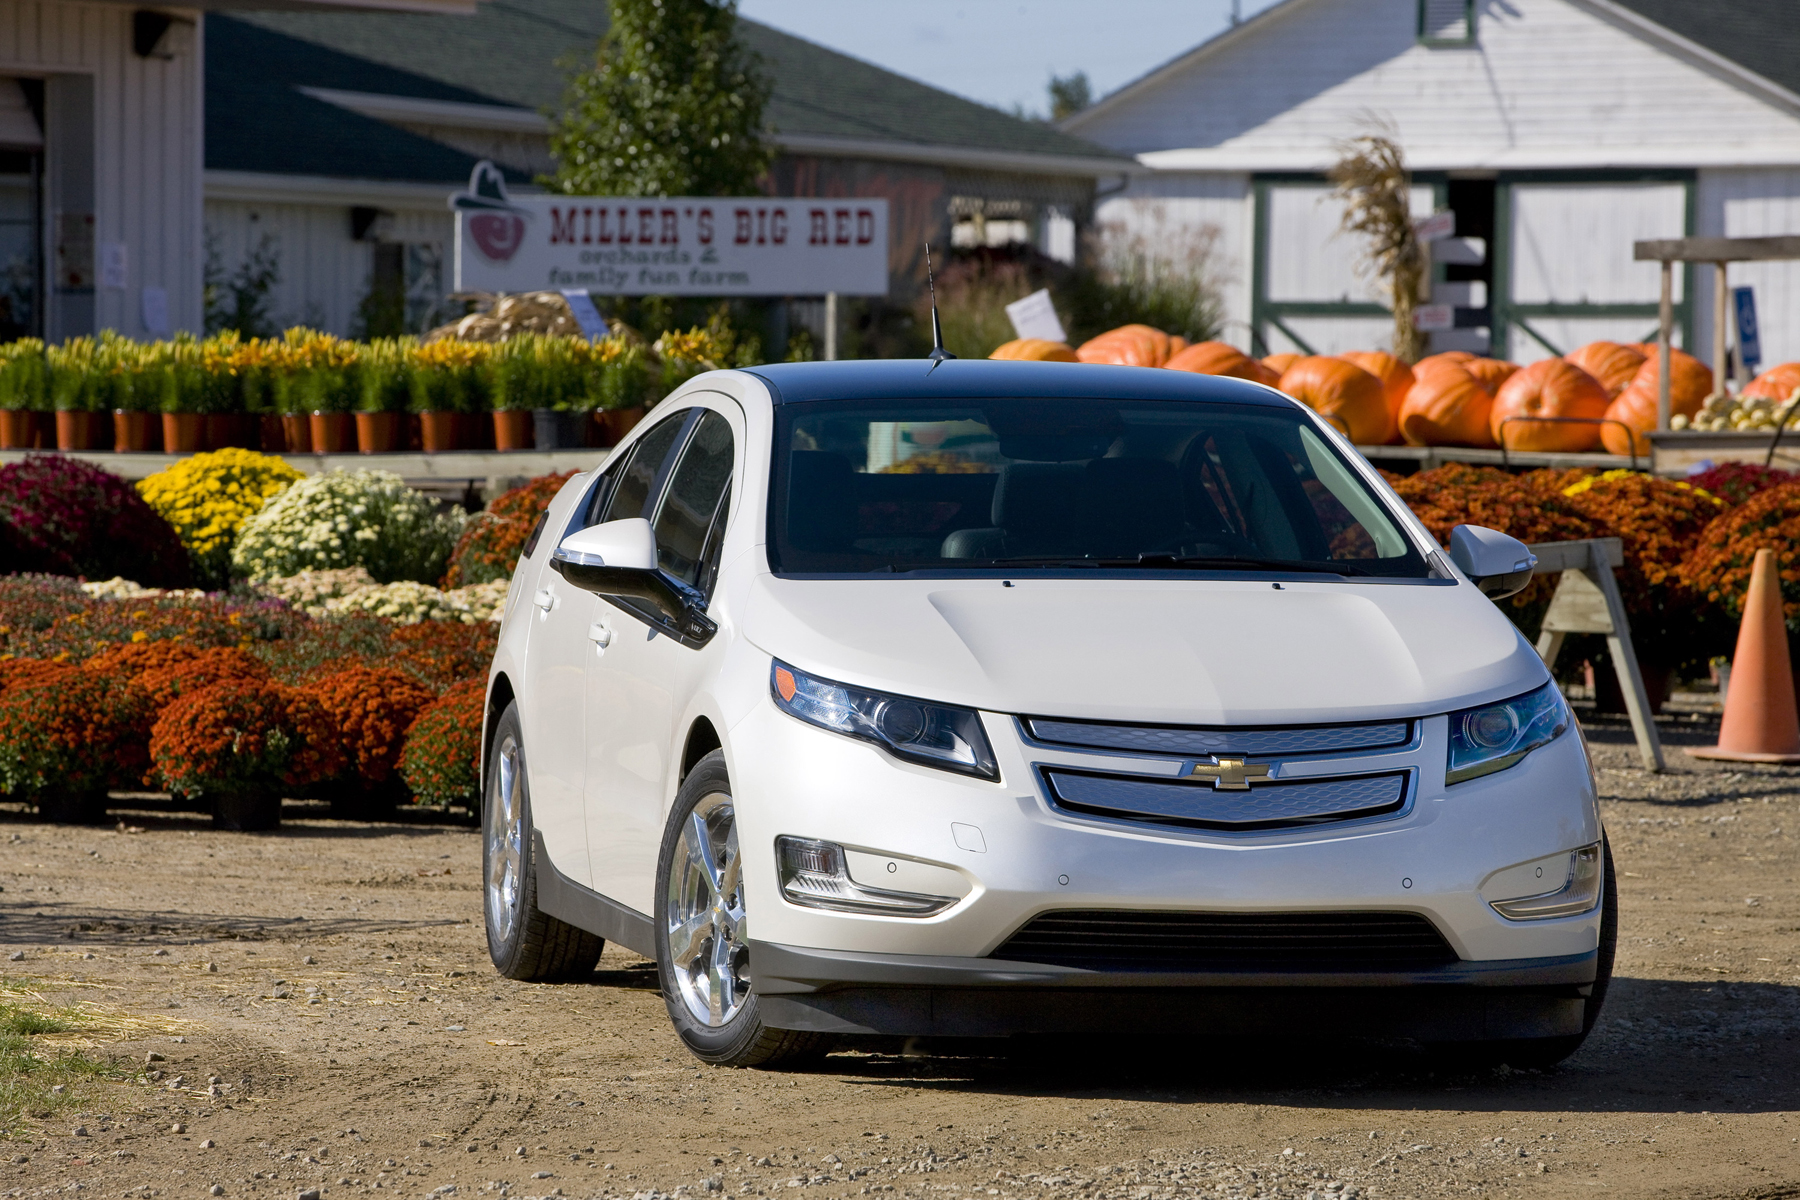 Volt Is Hybrid Runs On Electric For 40 Then Goes To Gas Chevy Manufacturer Photo Chevrolet Introduces The All New 2011 Vehicle With Extended